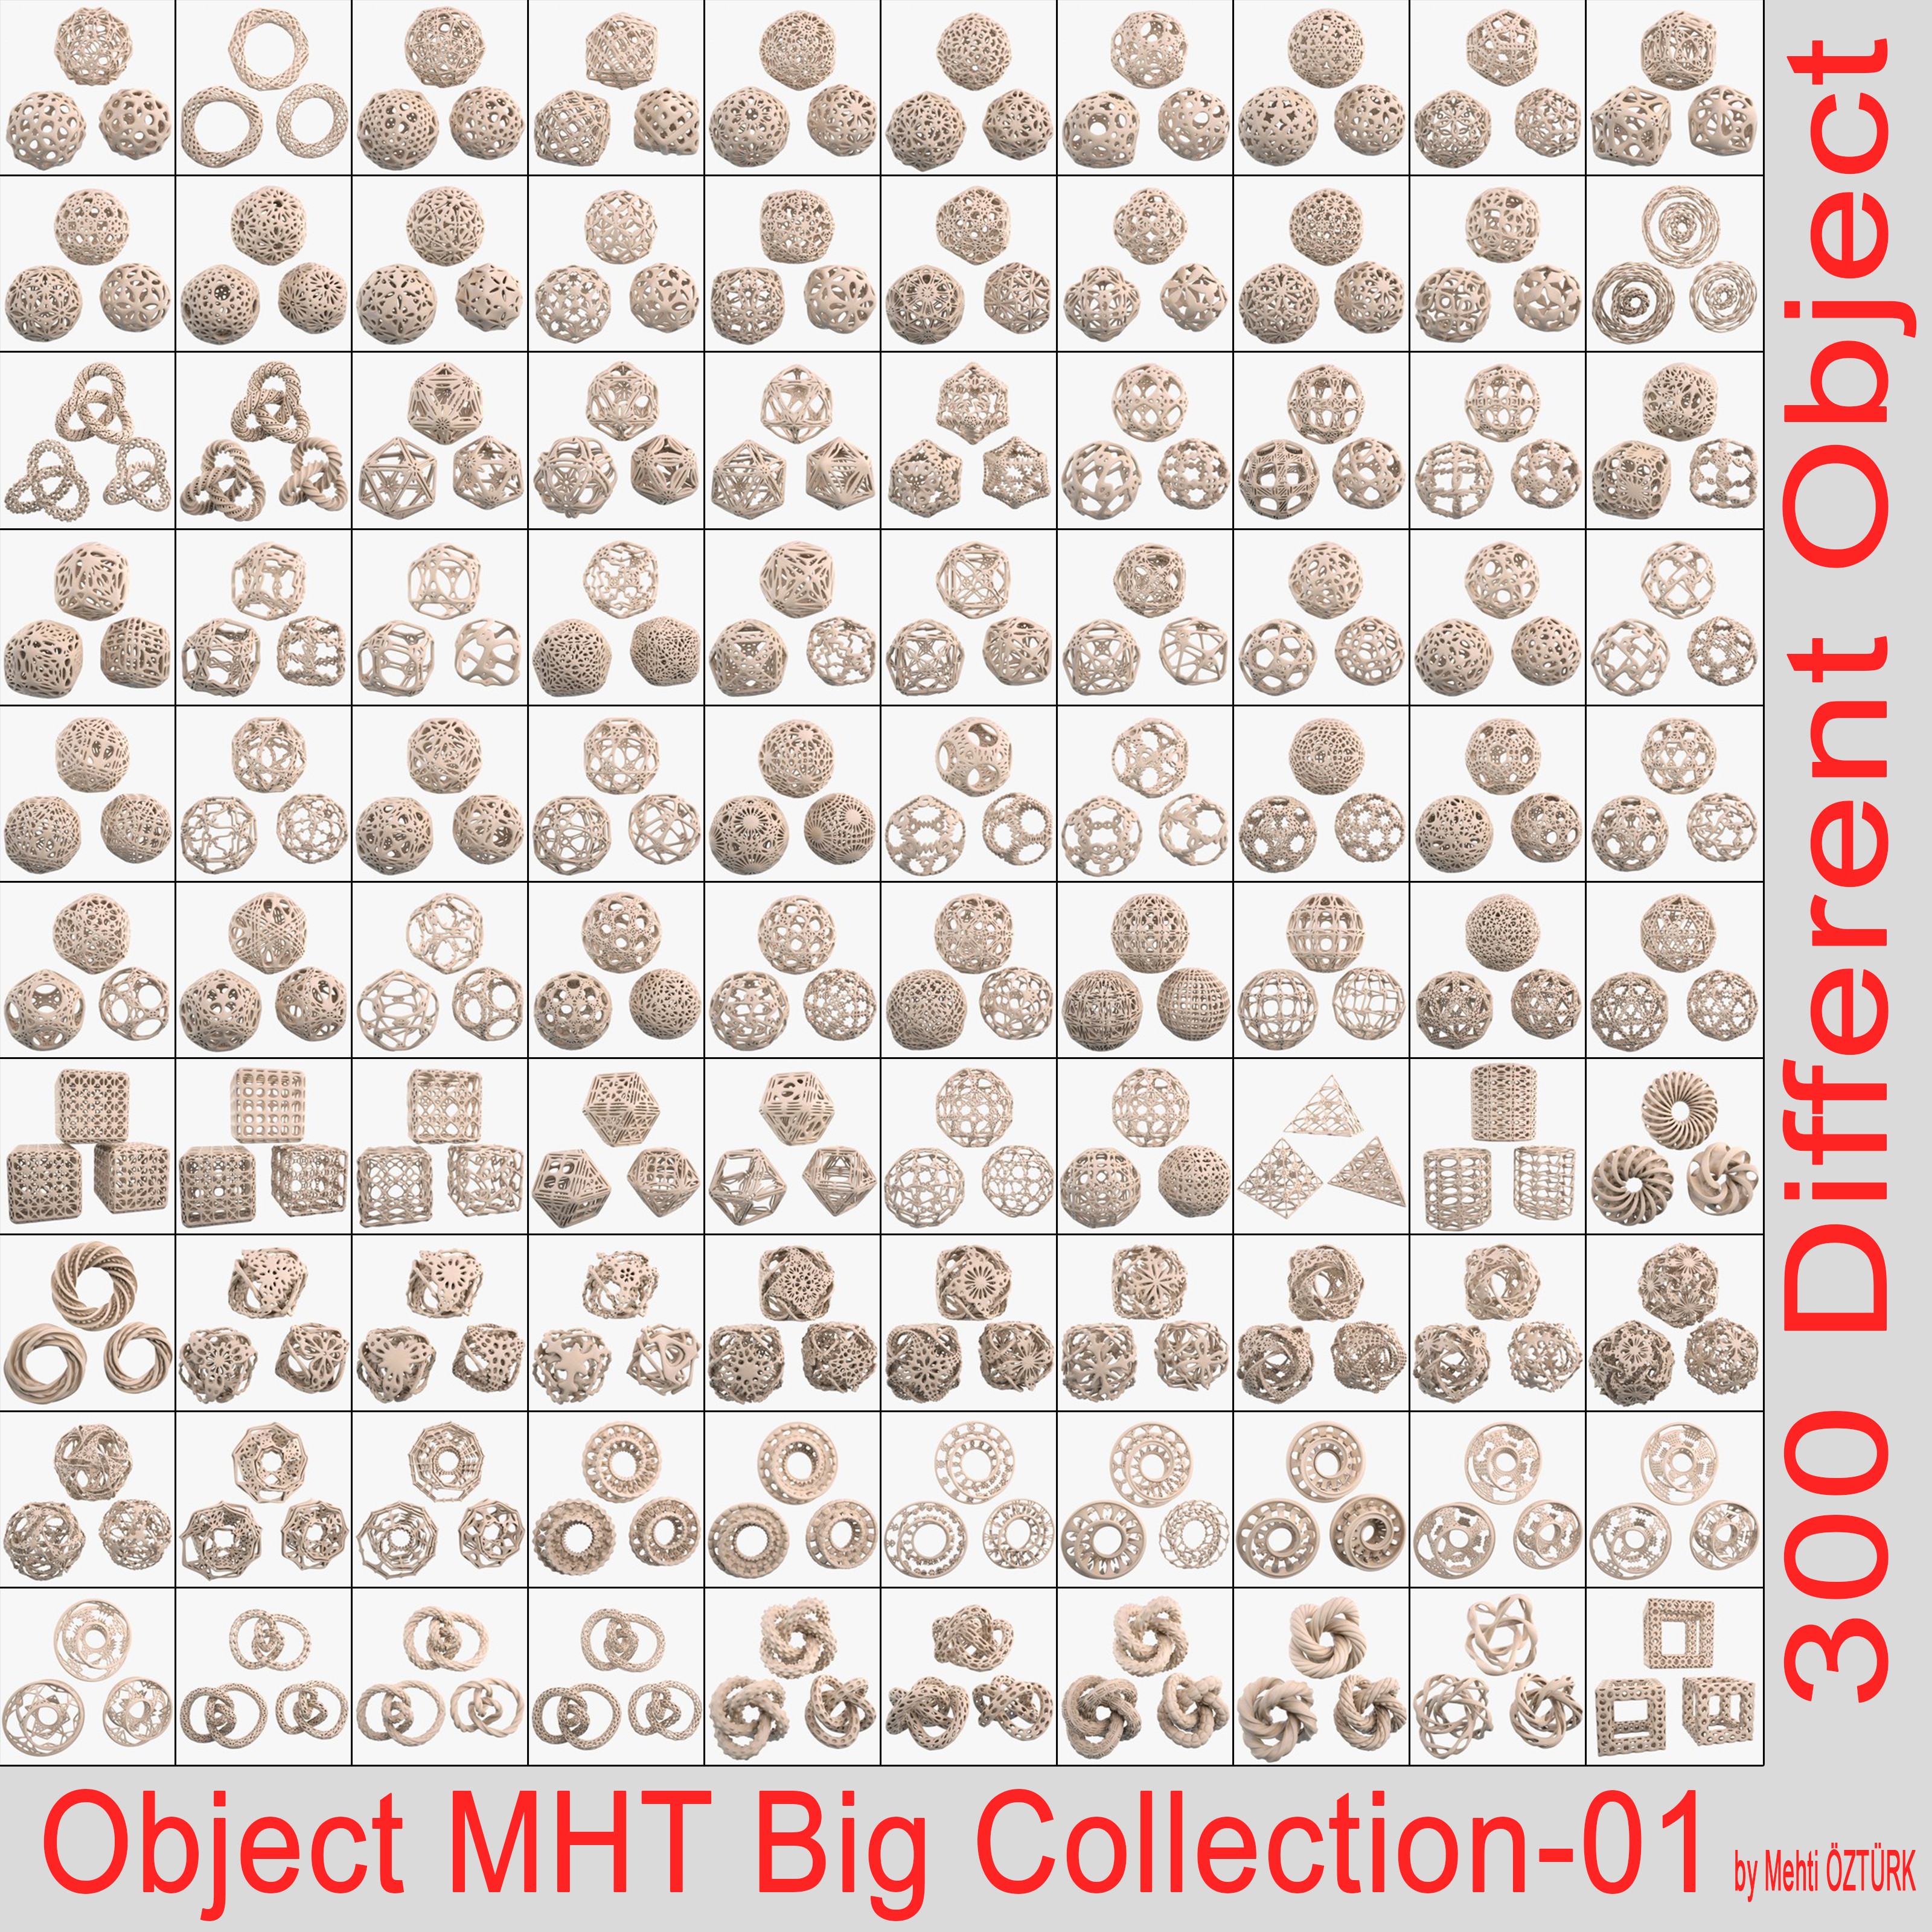 Object MHT Big Collection-01